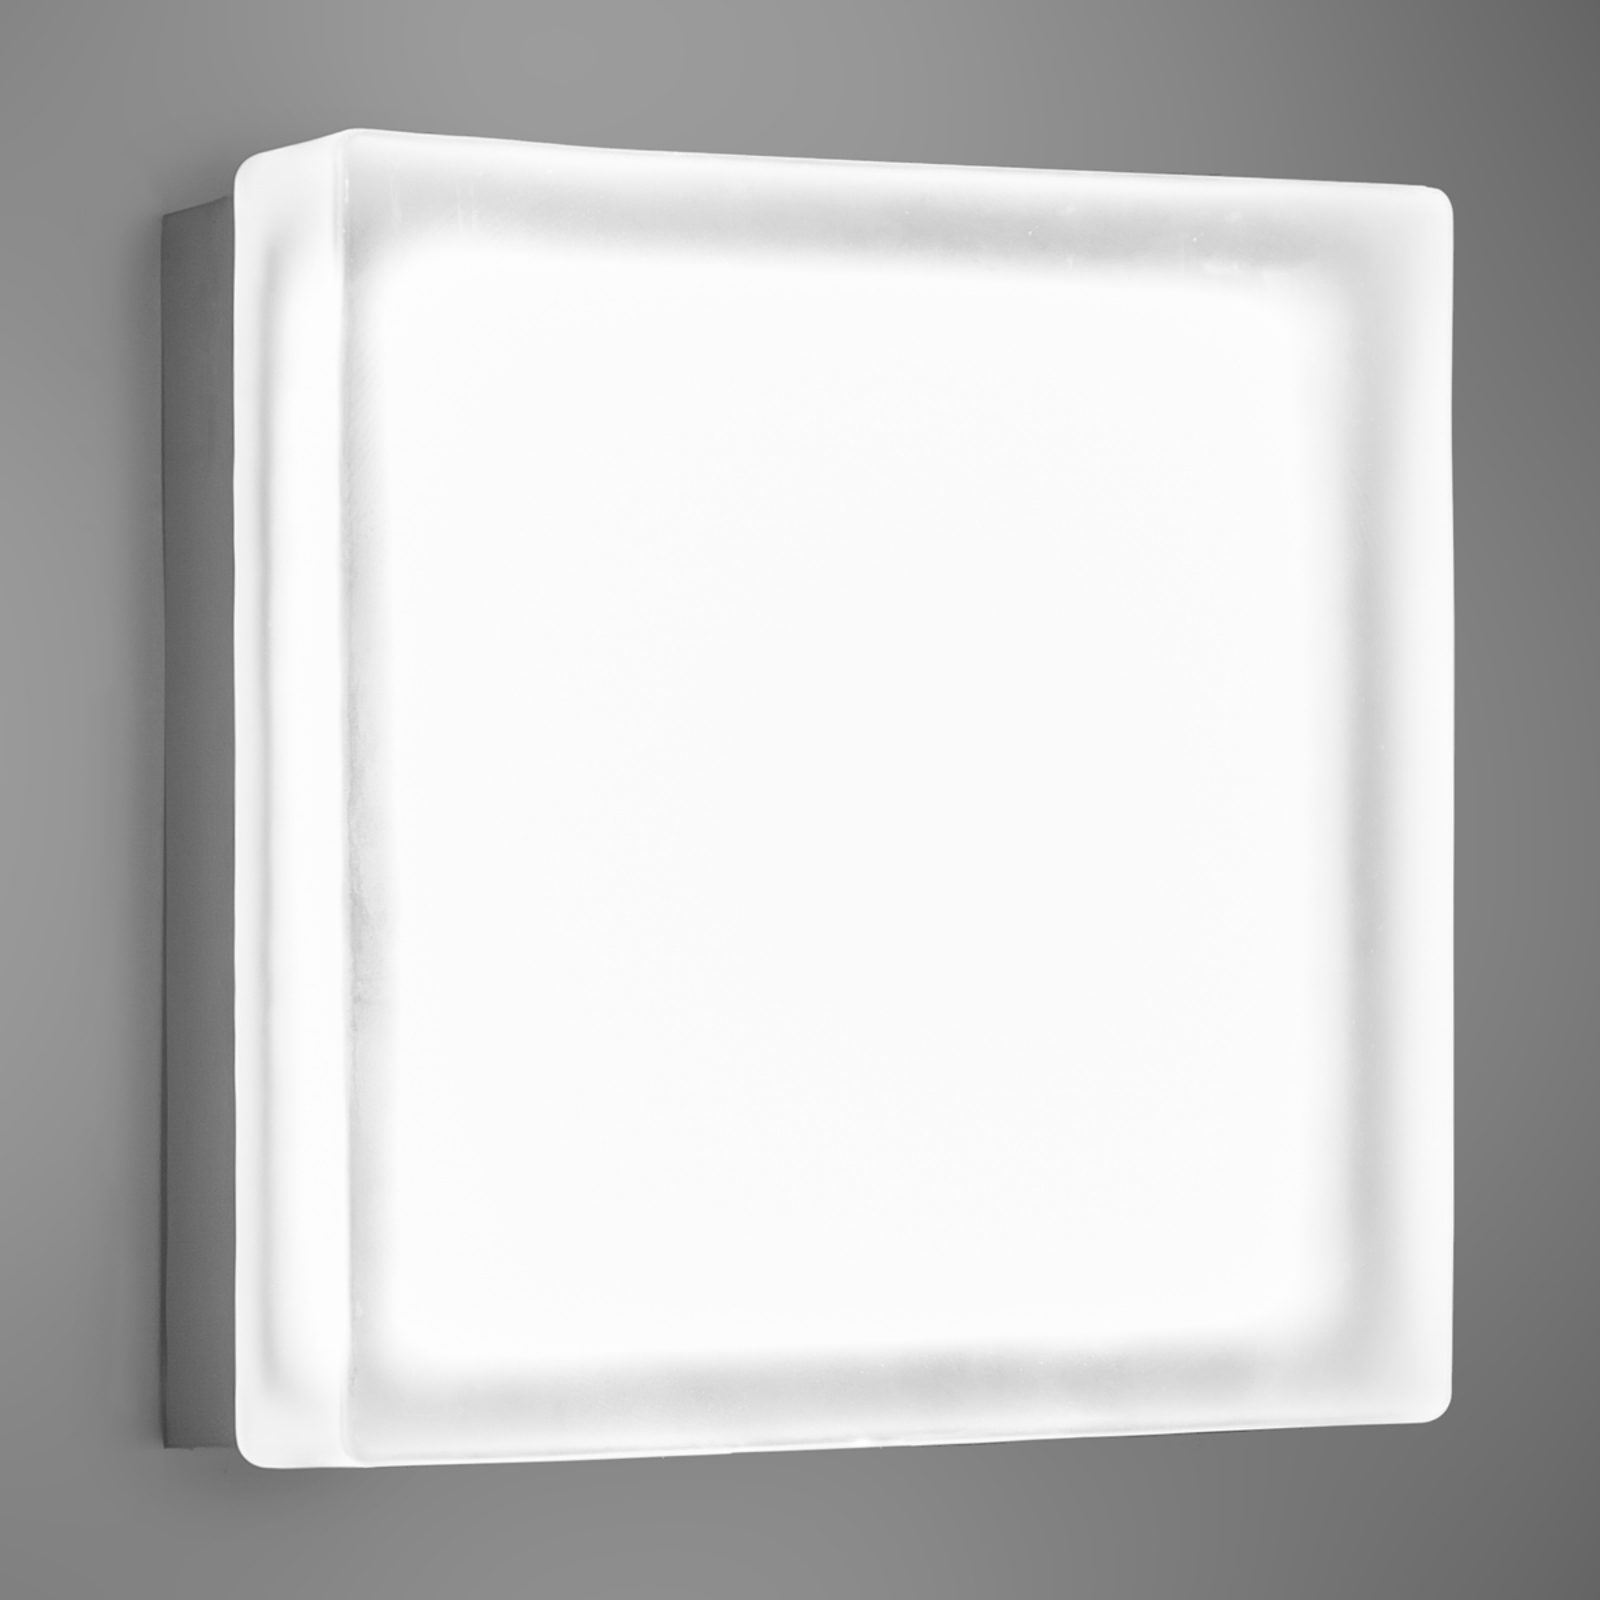 Applique LED Briq 02 carrée blanc neutre